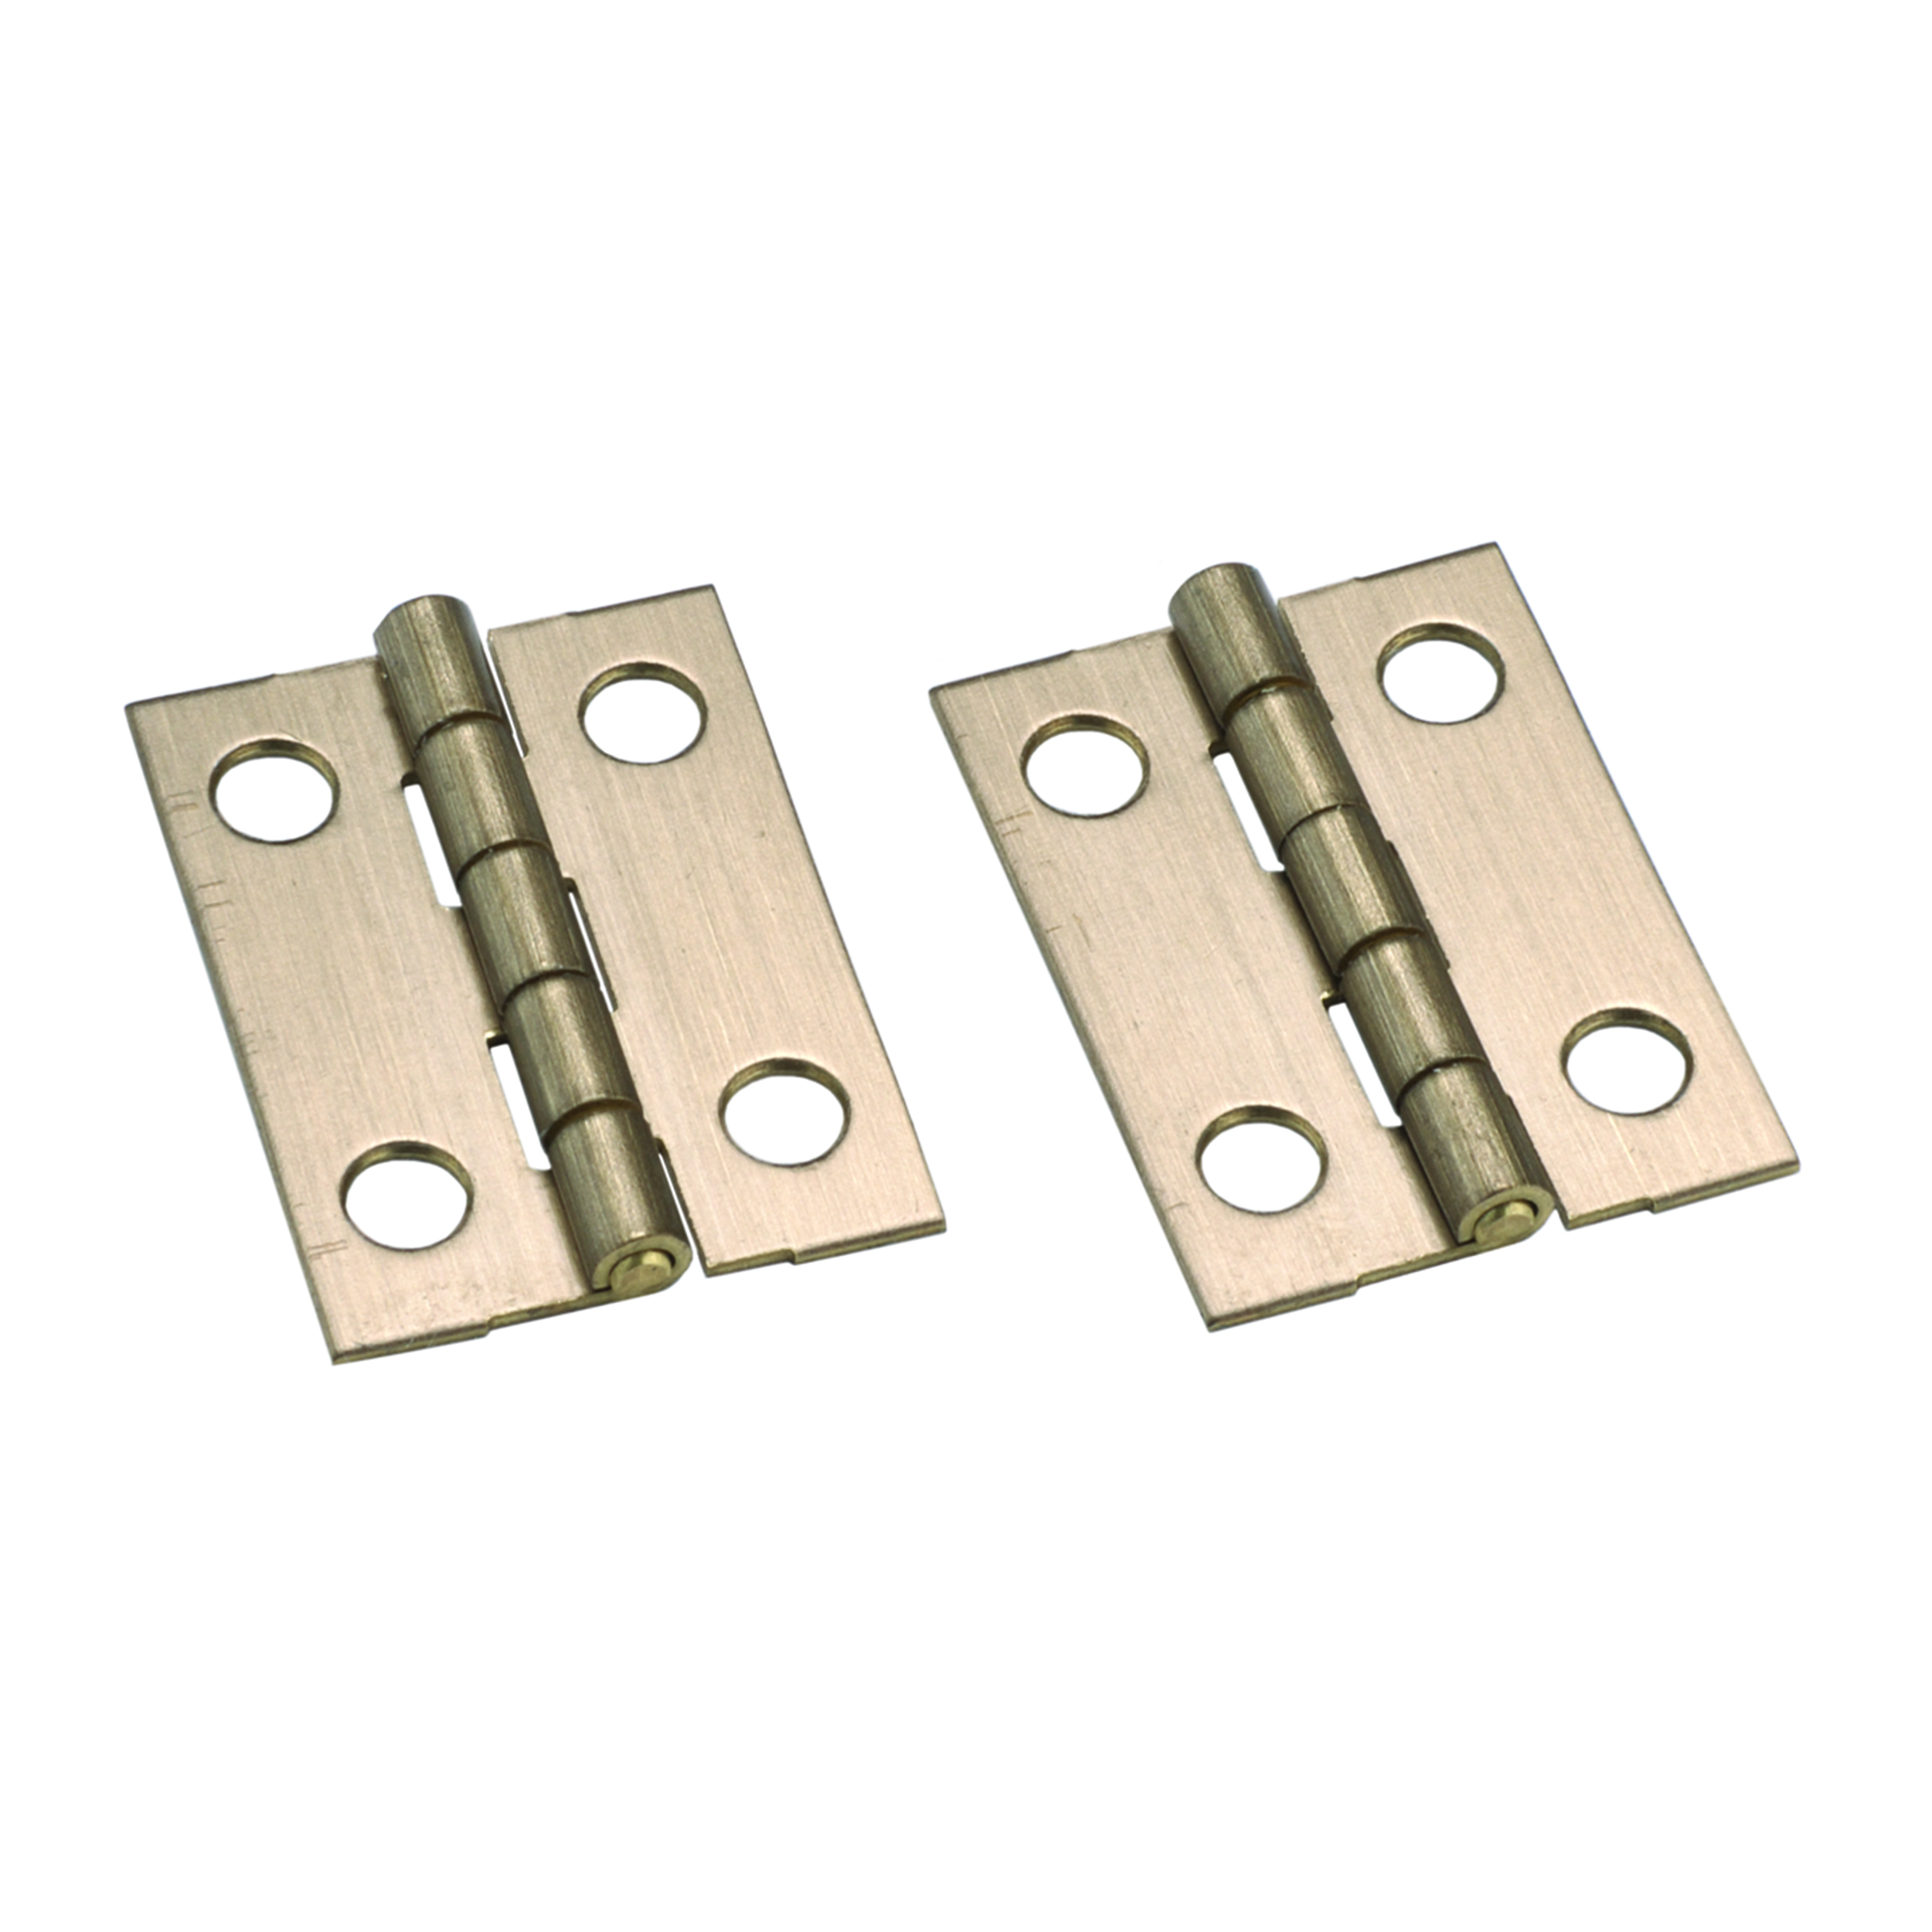 Stanley Solid Brass Ab Miniature Narrow Hinge 1